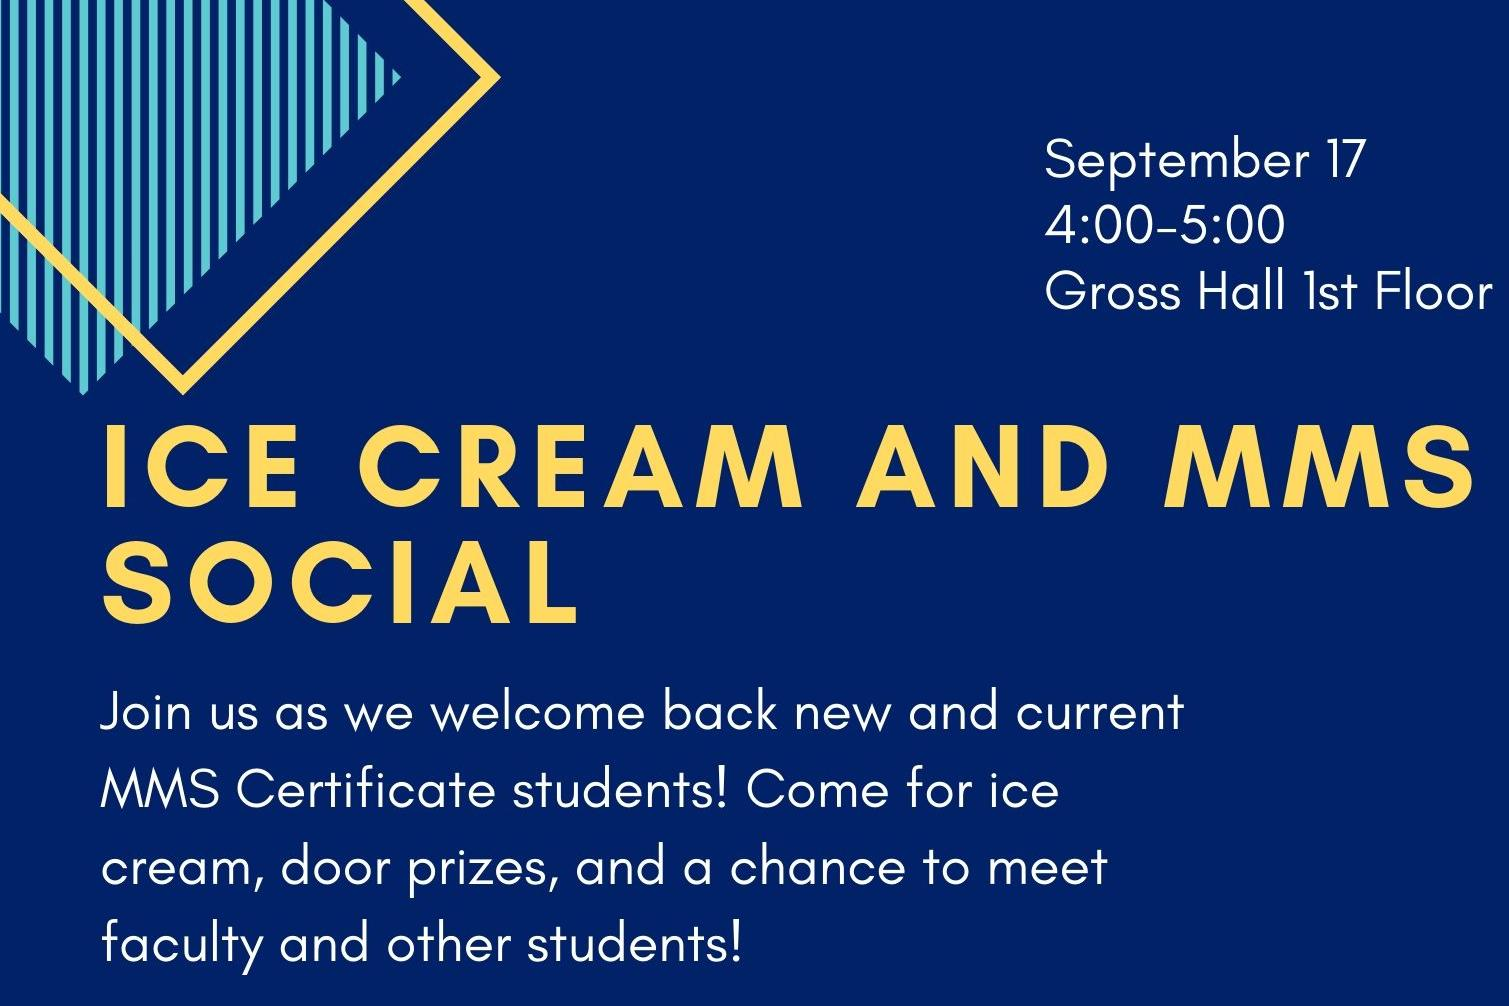 Ice Cream and MMS Social: Join us as we welcome back new and current MMS Certificate students!